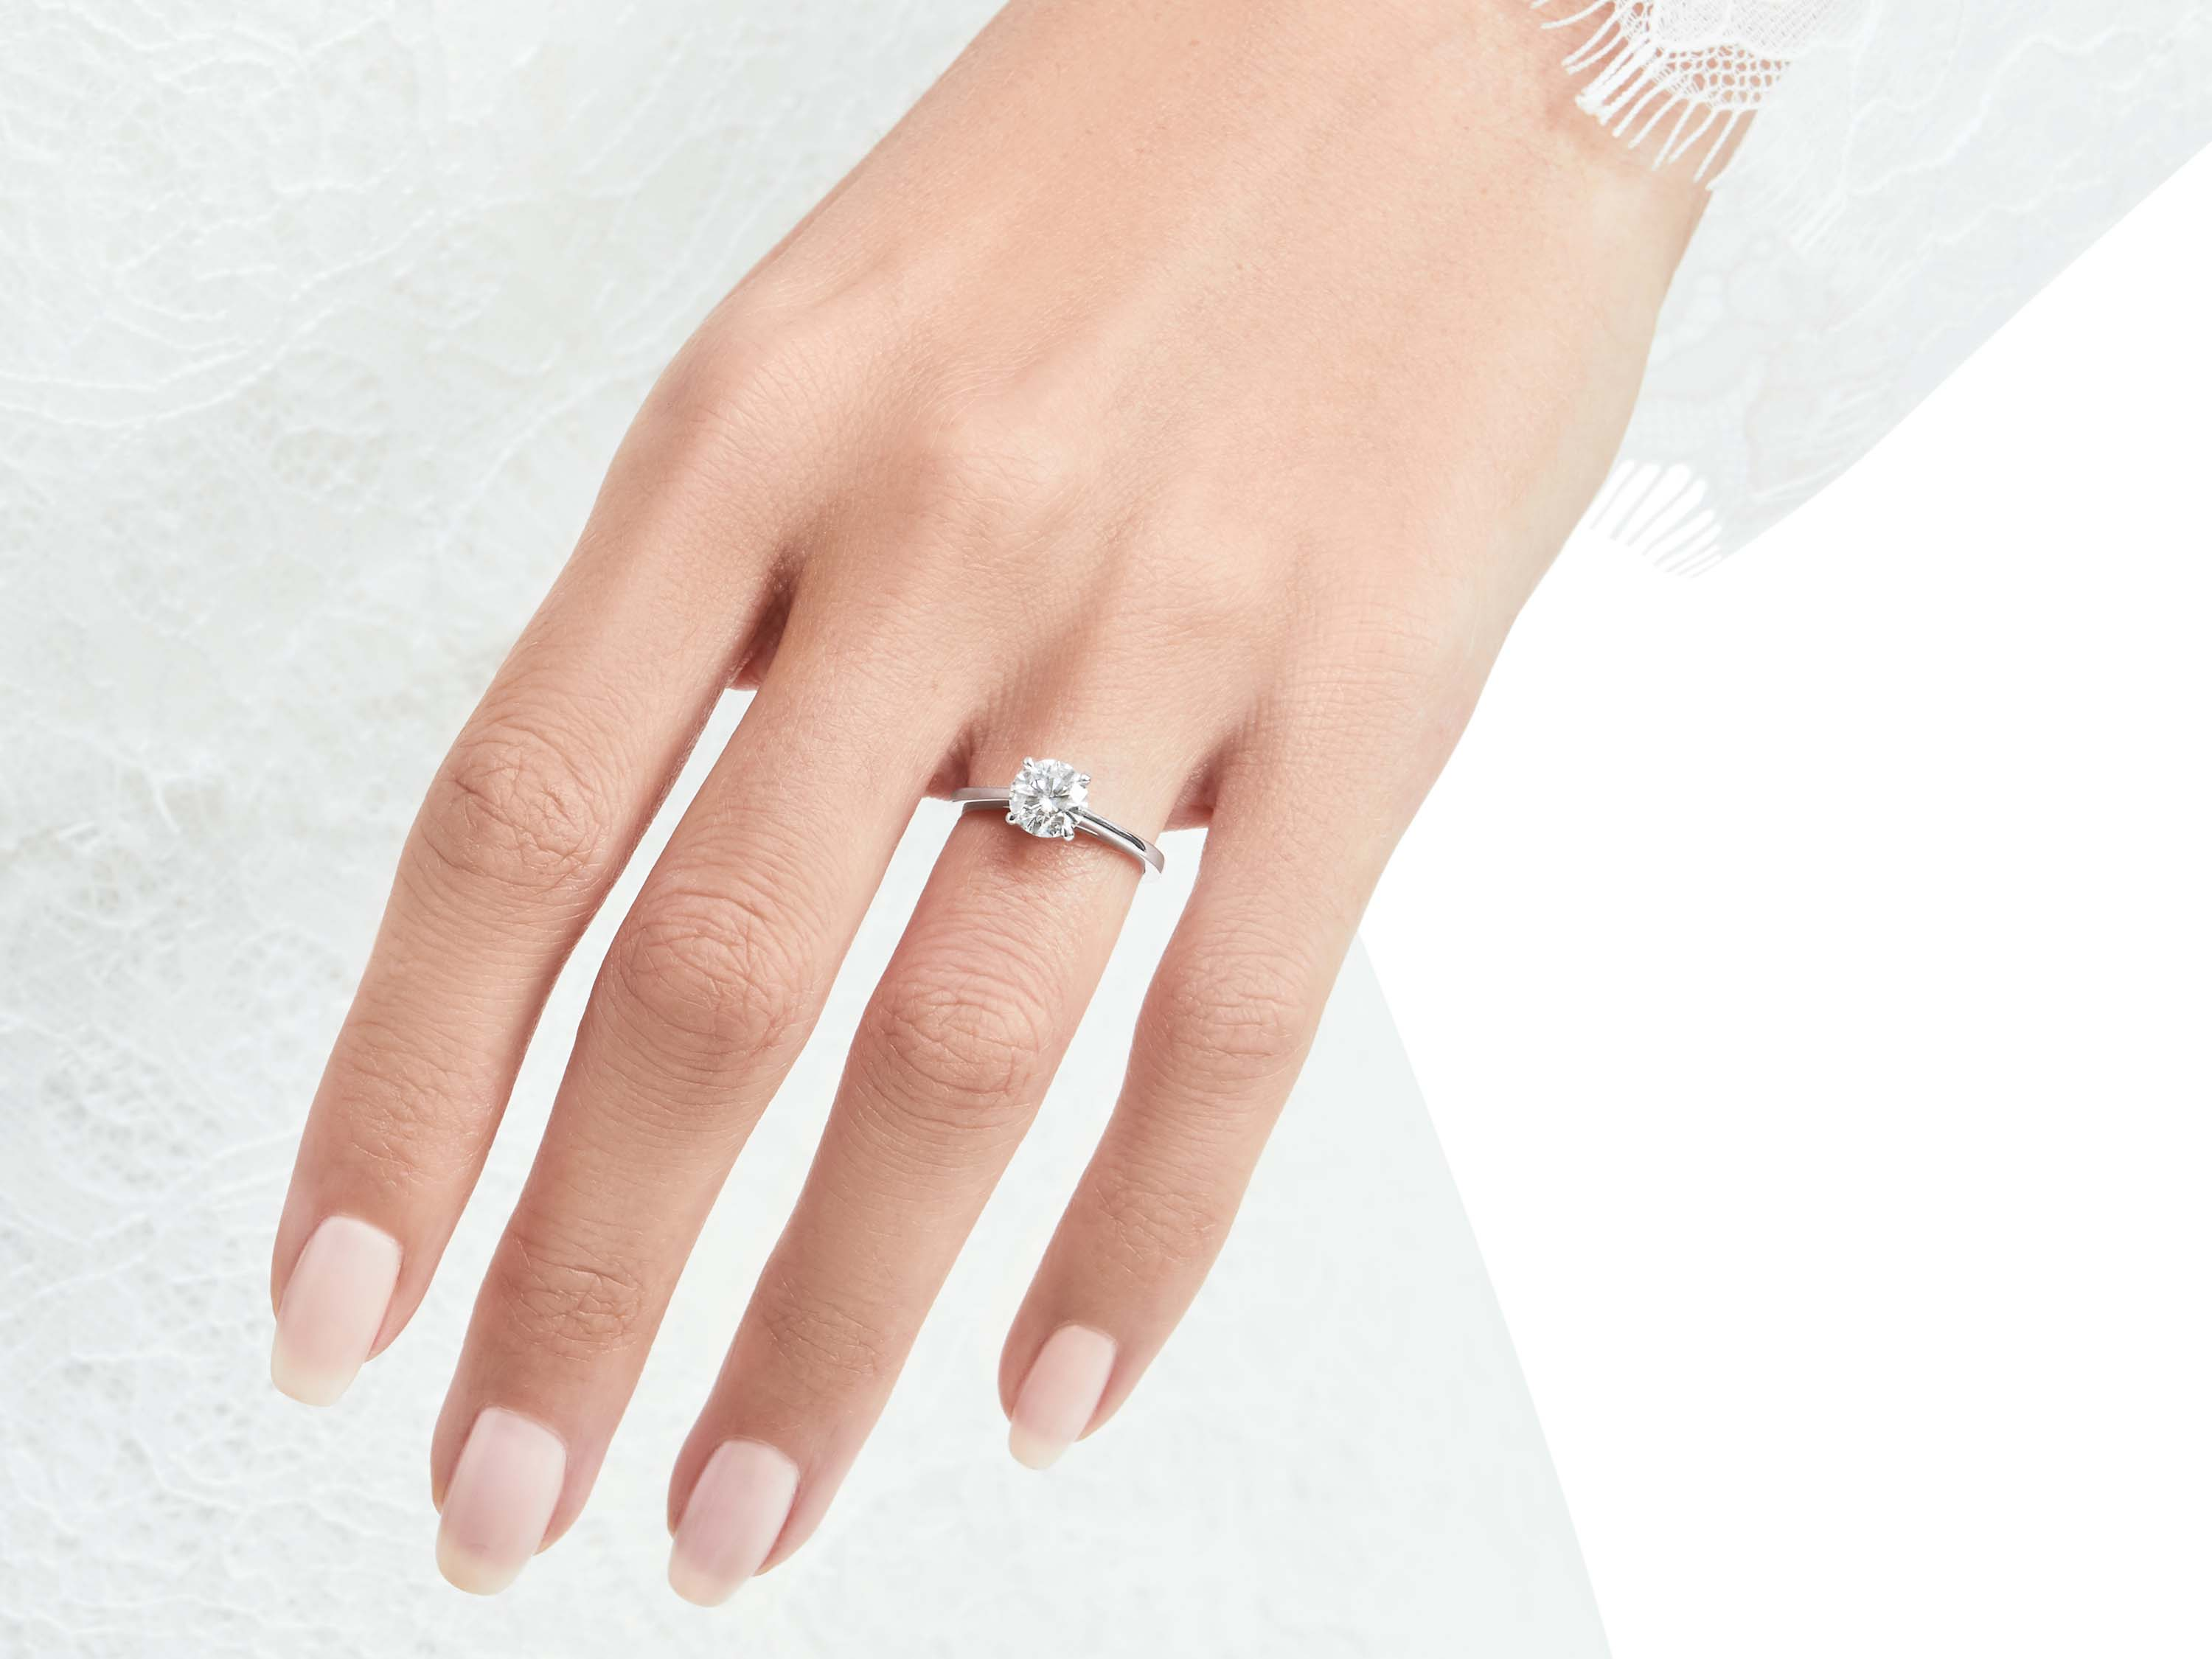 Model wears Paragon Round Diamond Engagement Ring from the Graff bridal jewellery collection